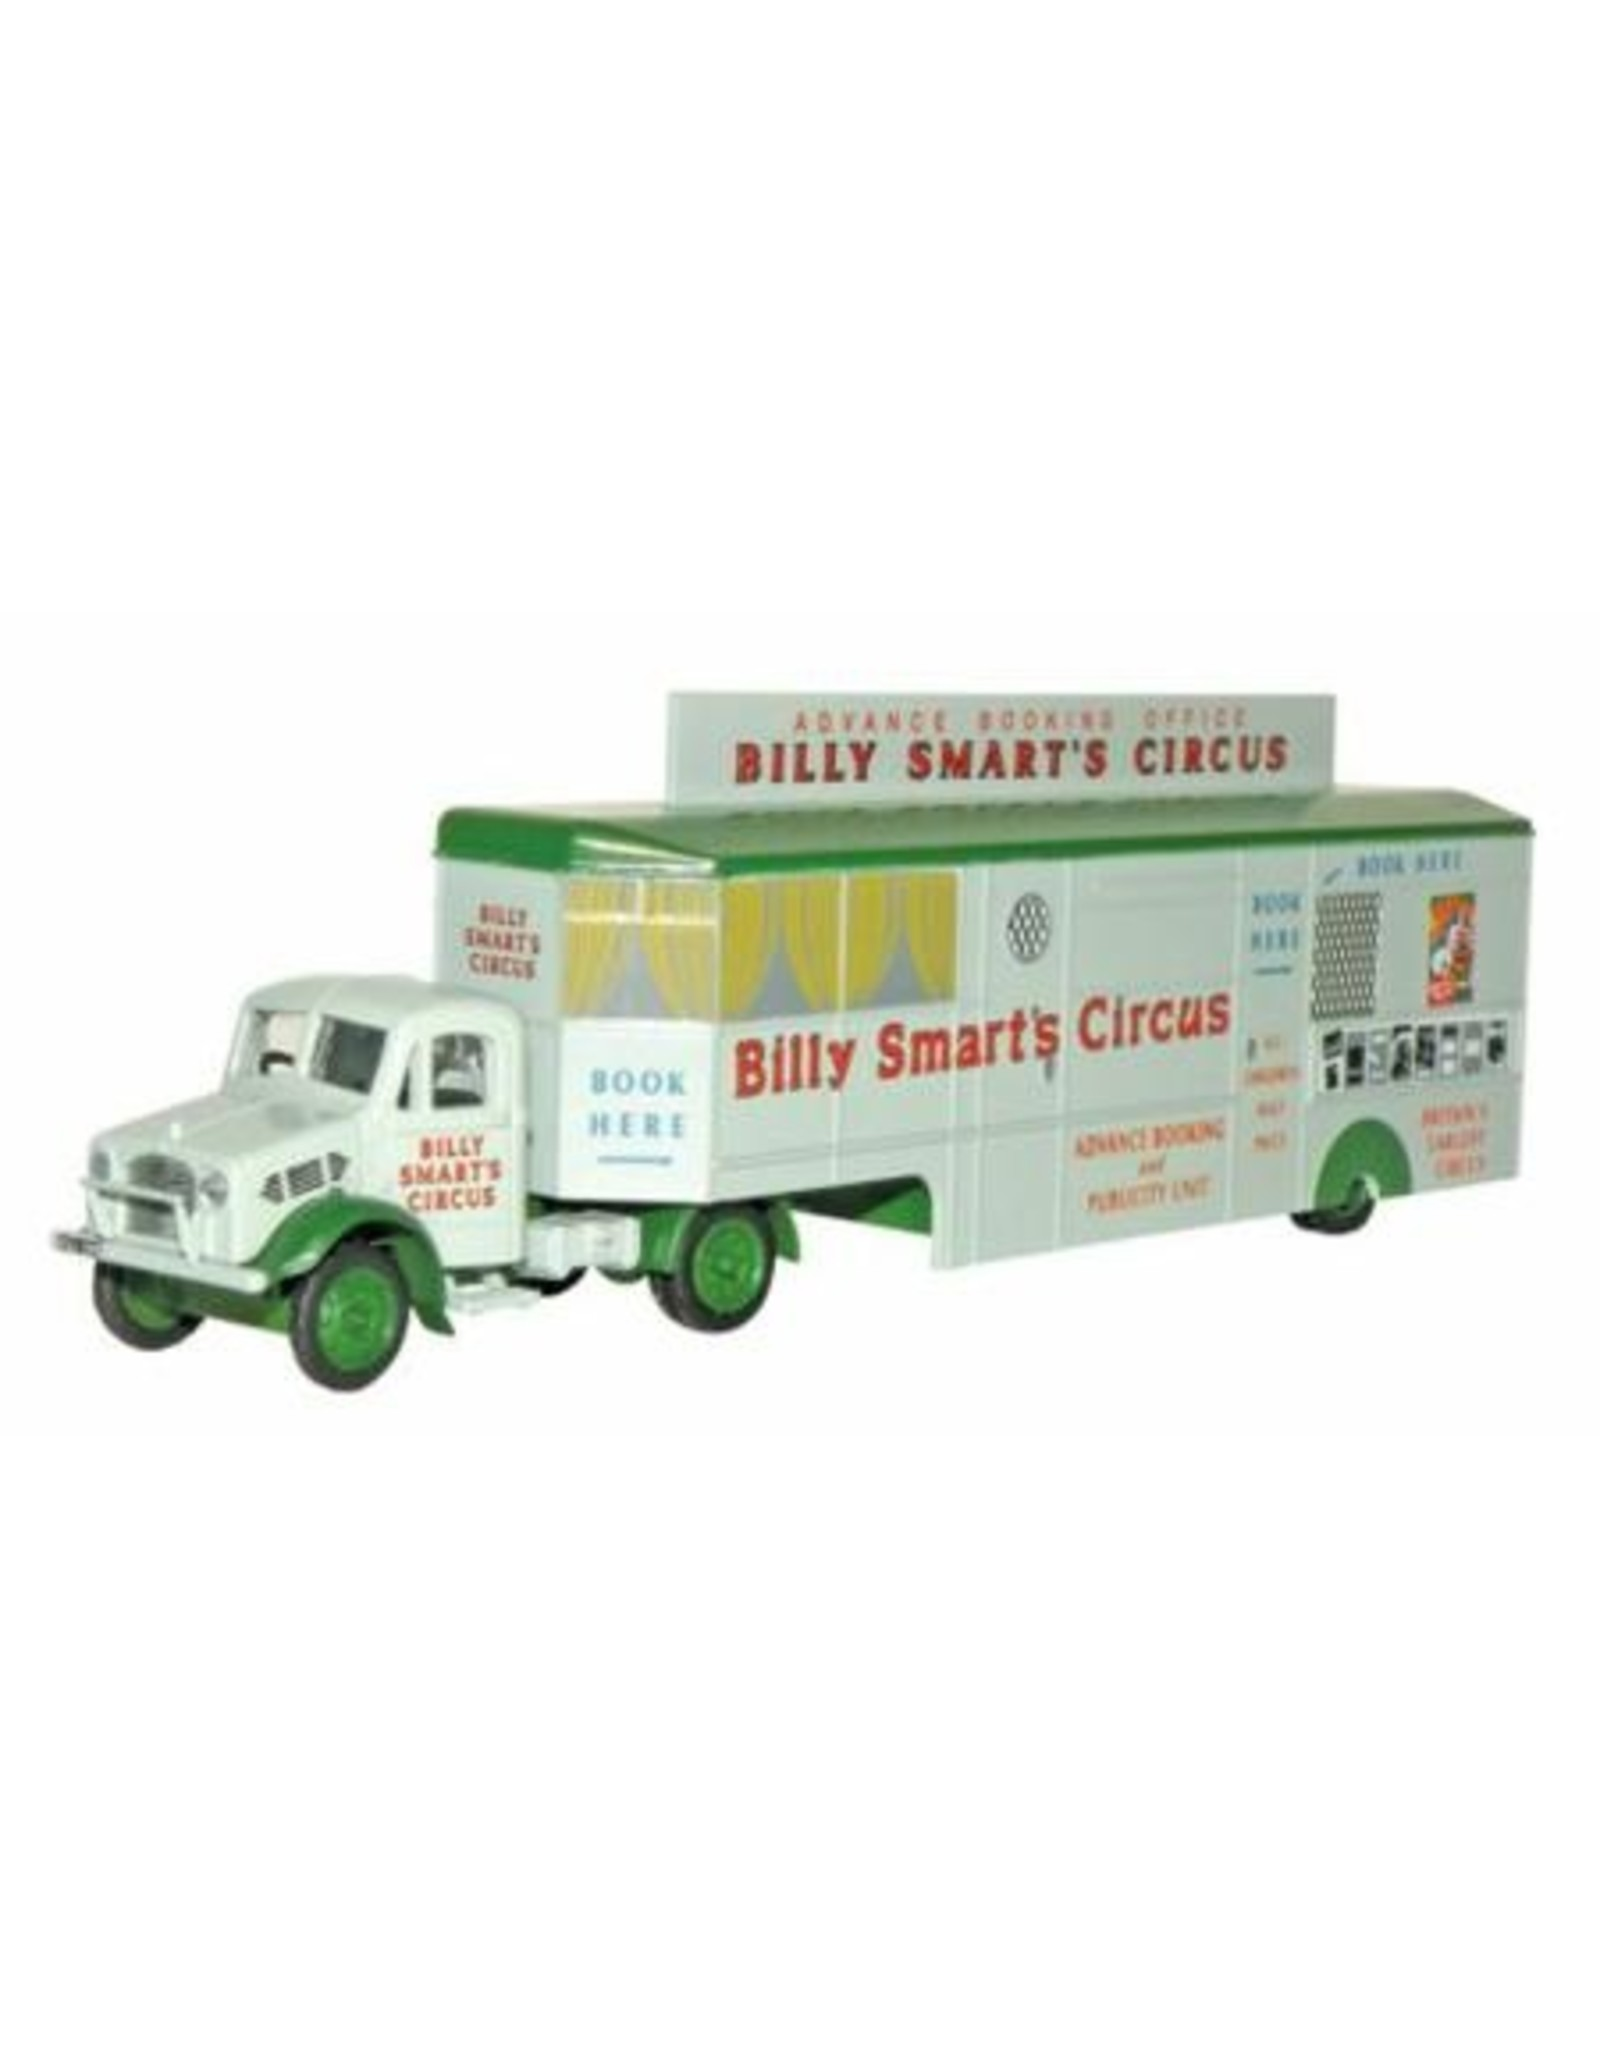 Bedford BEDFORD OX BOOKING OFFICE BILLY SMARTS